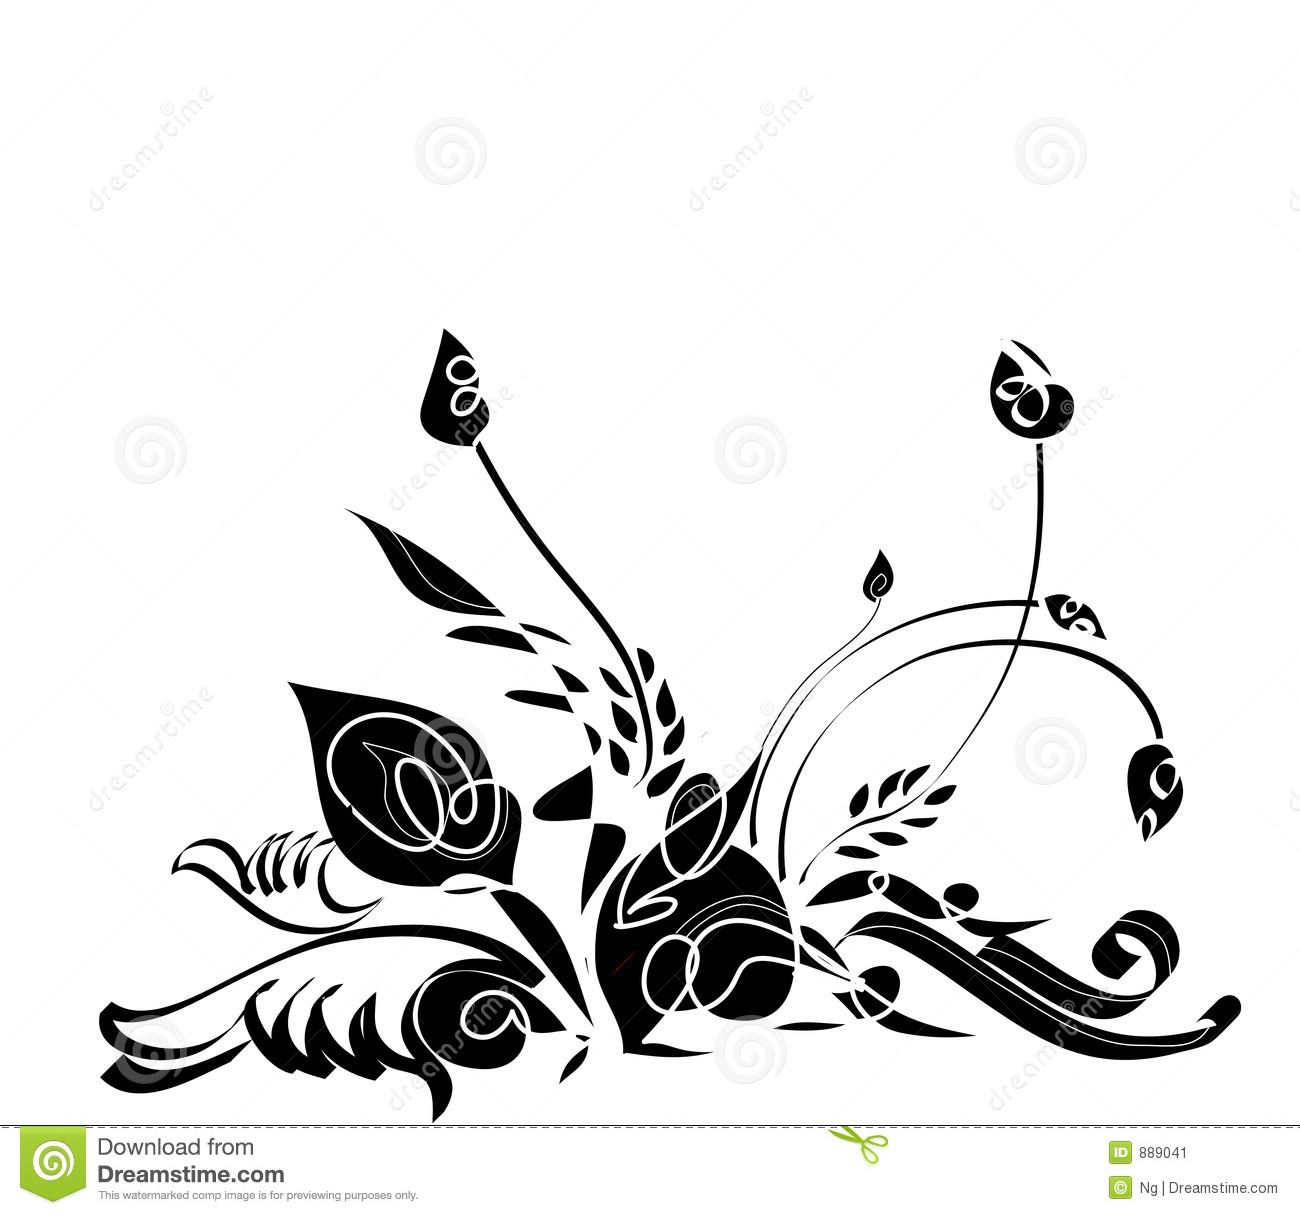 abstract floral design stock illustration illustration of graphic